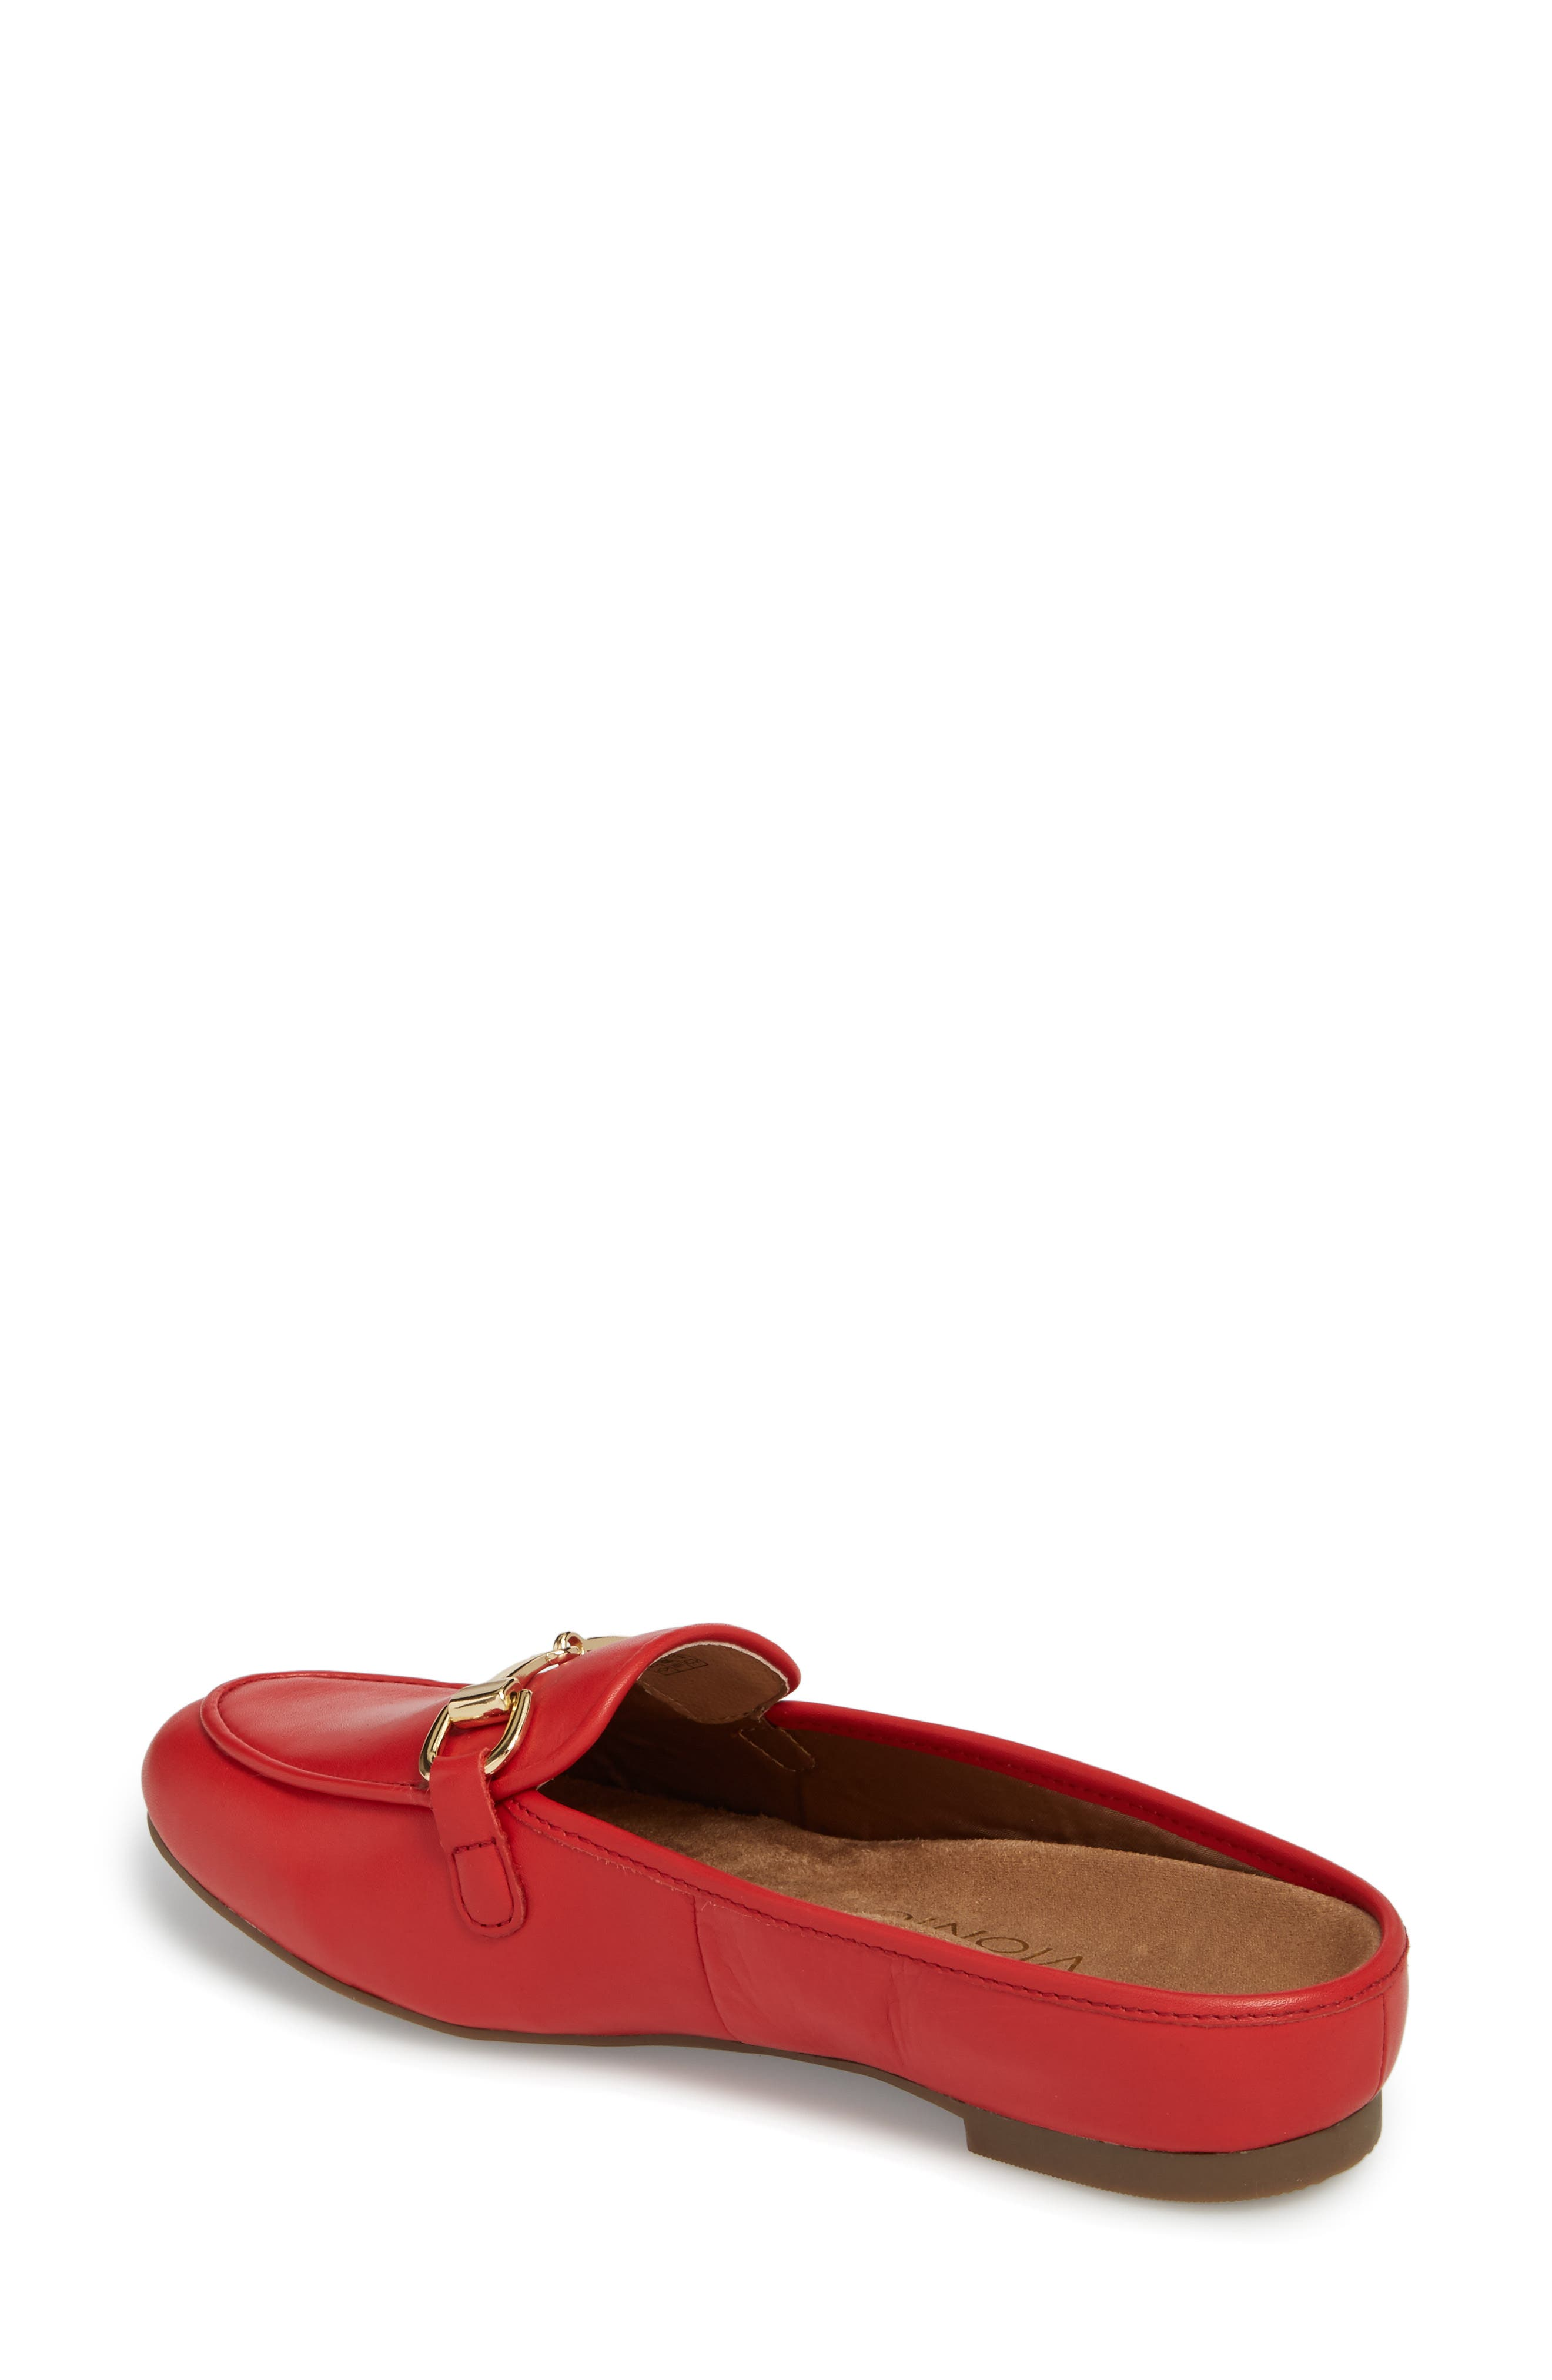 Adeline Mule,                             Alternate thumbnail 2, color,                             Red Leather